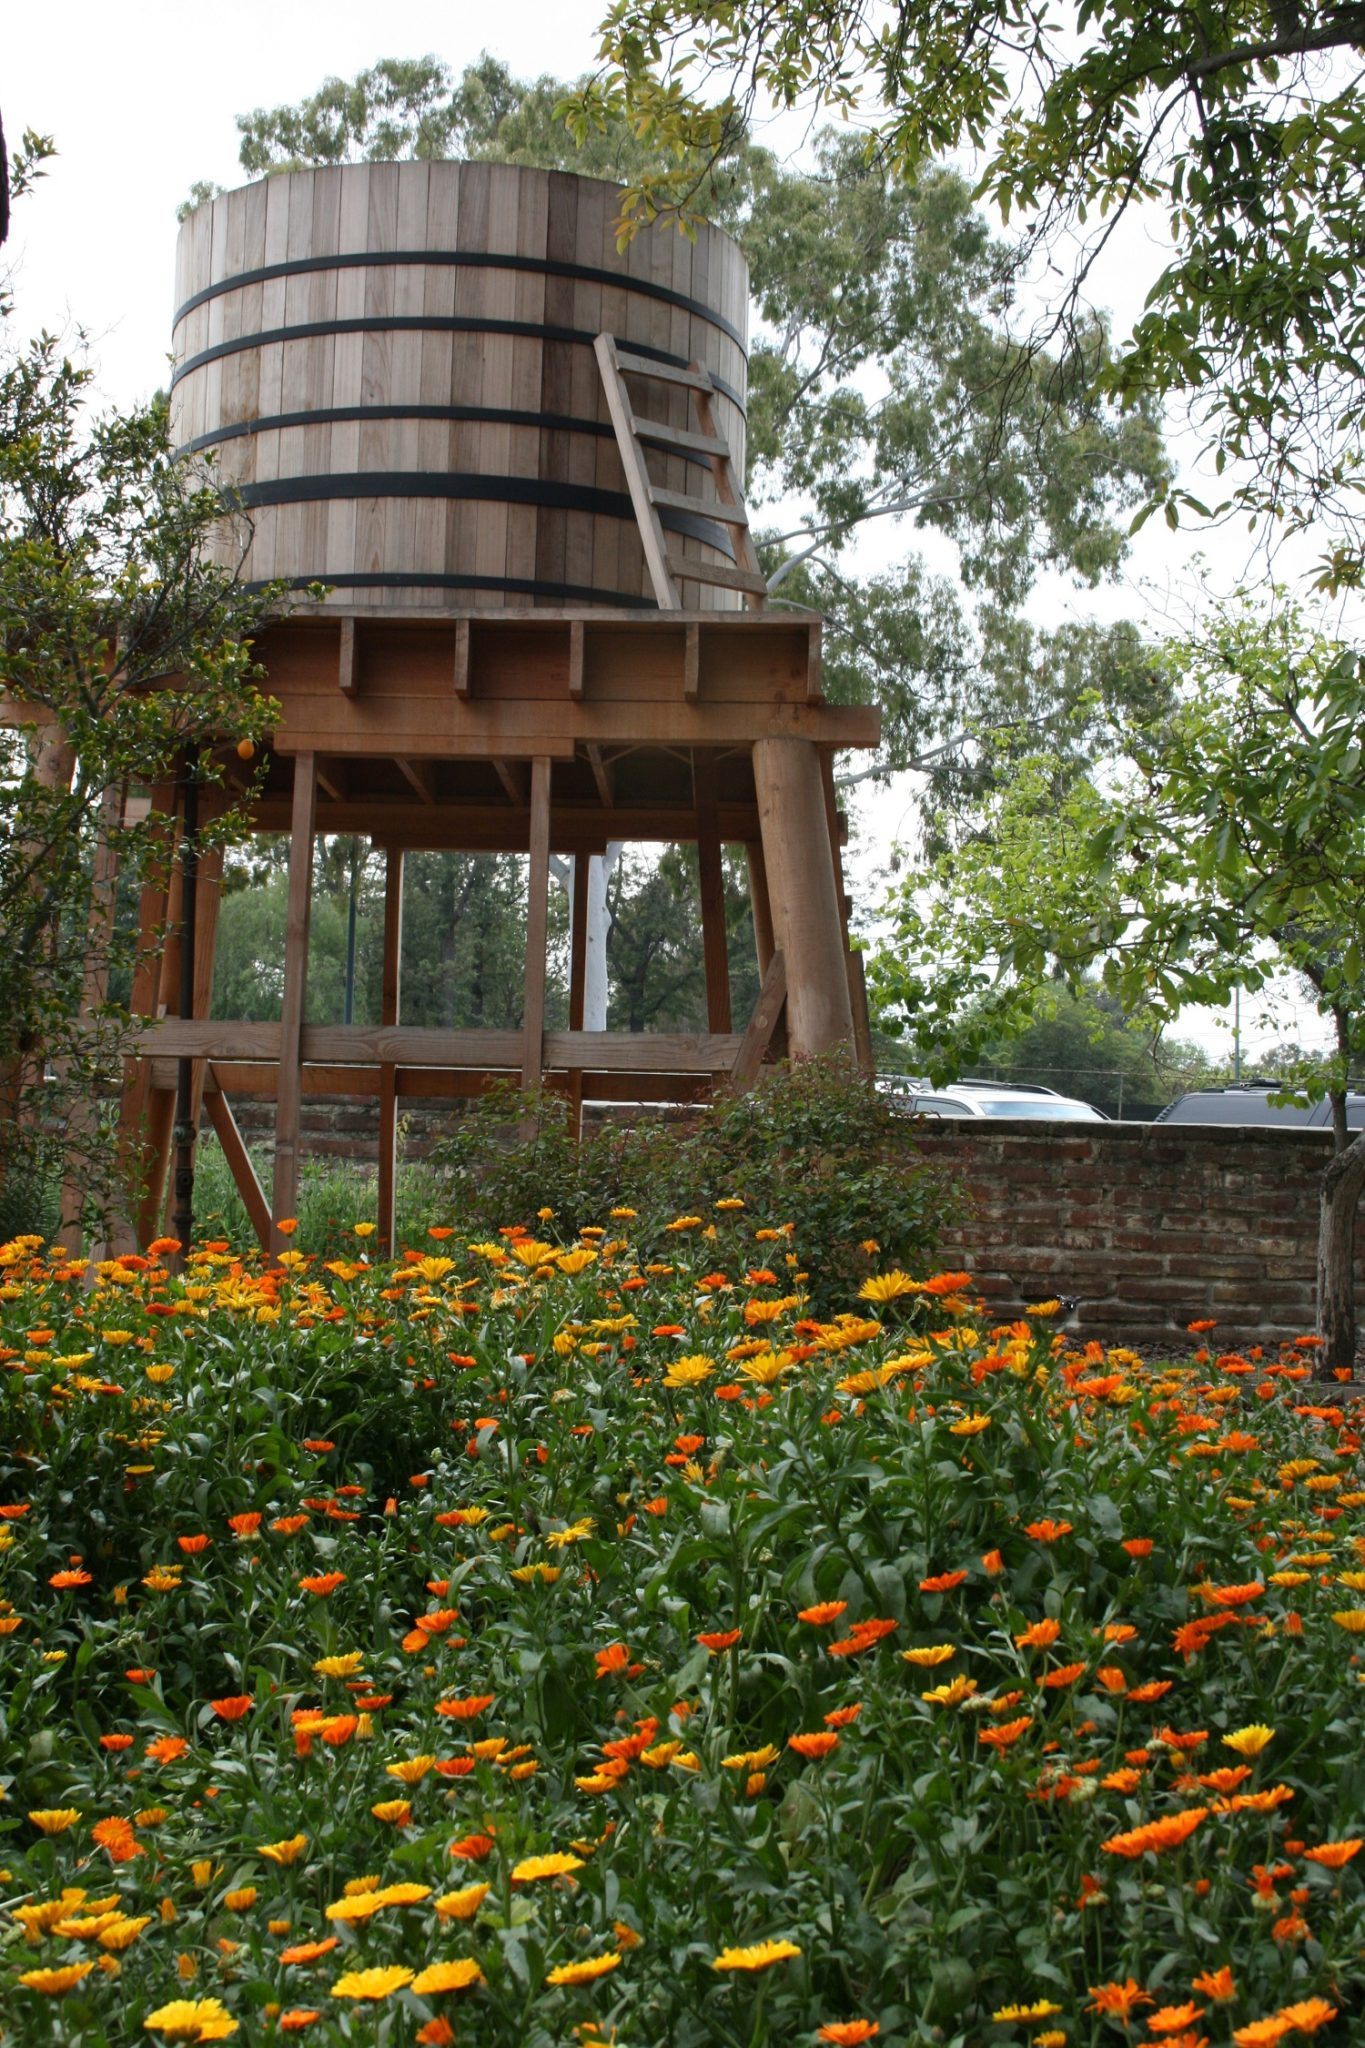 Water Tower with Calendulas